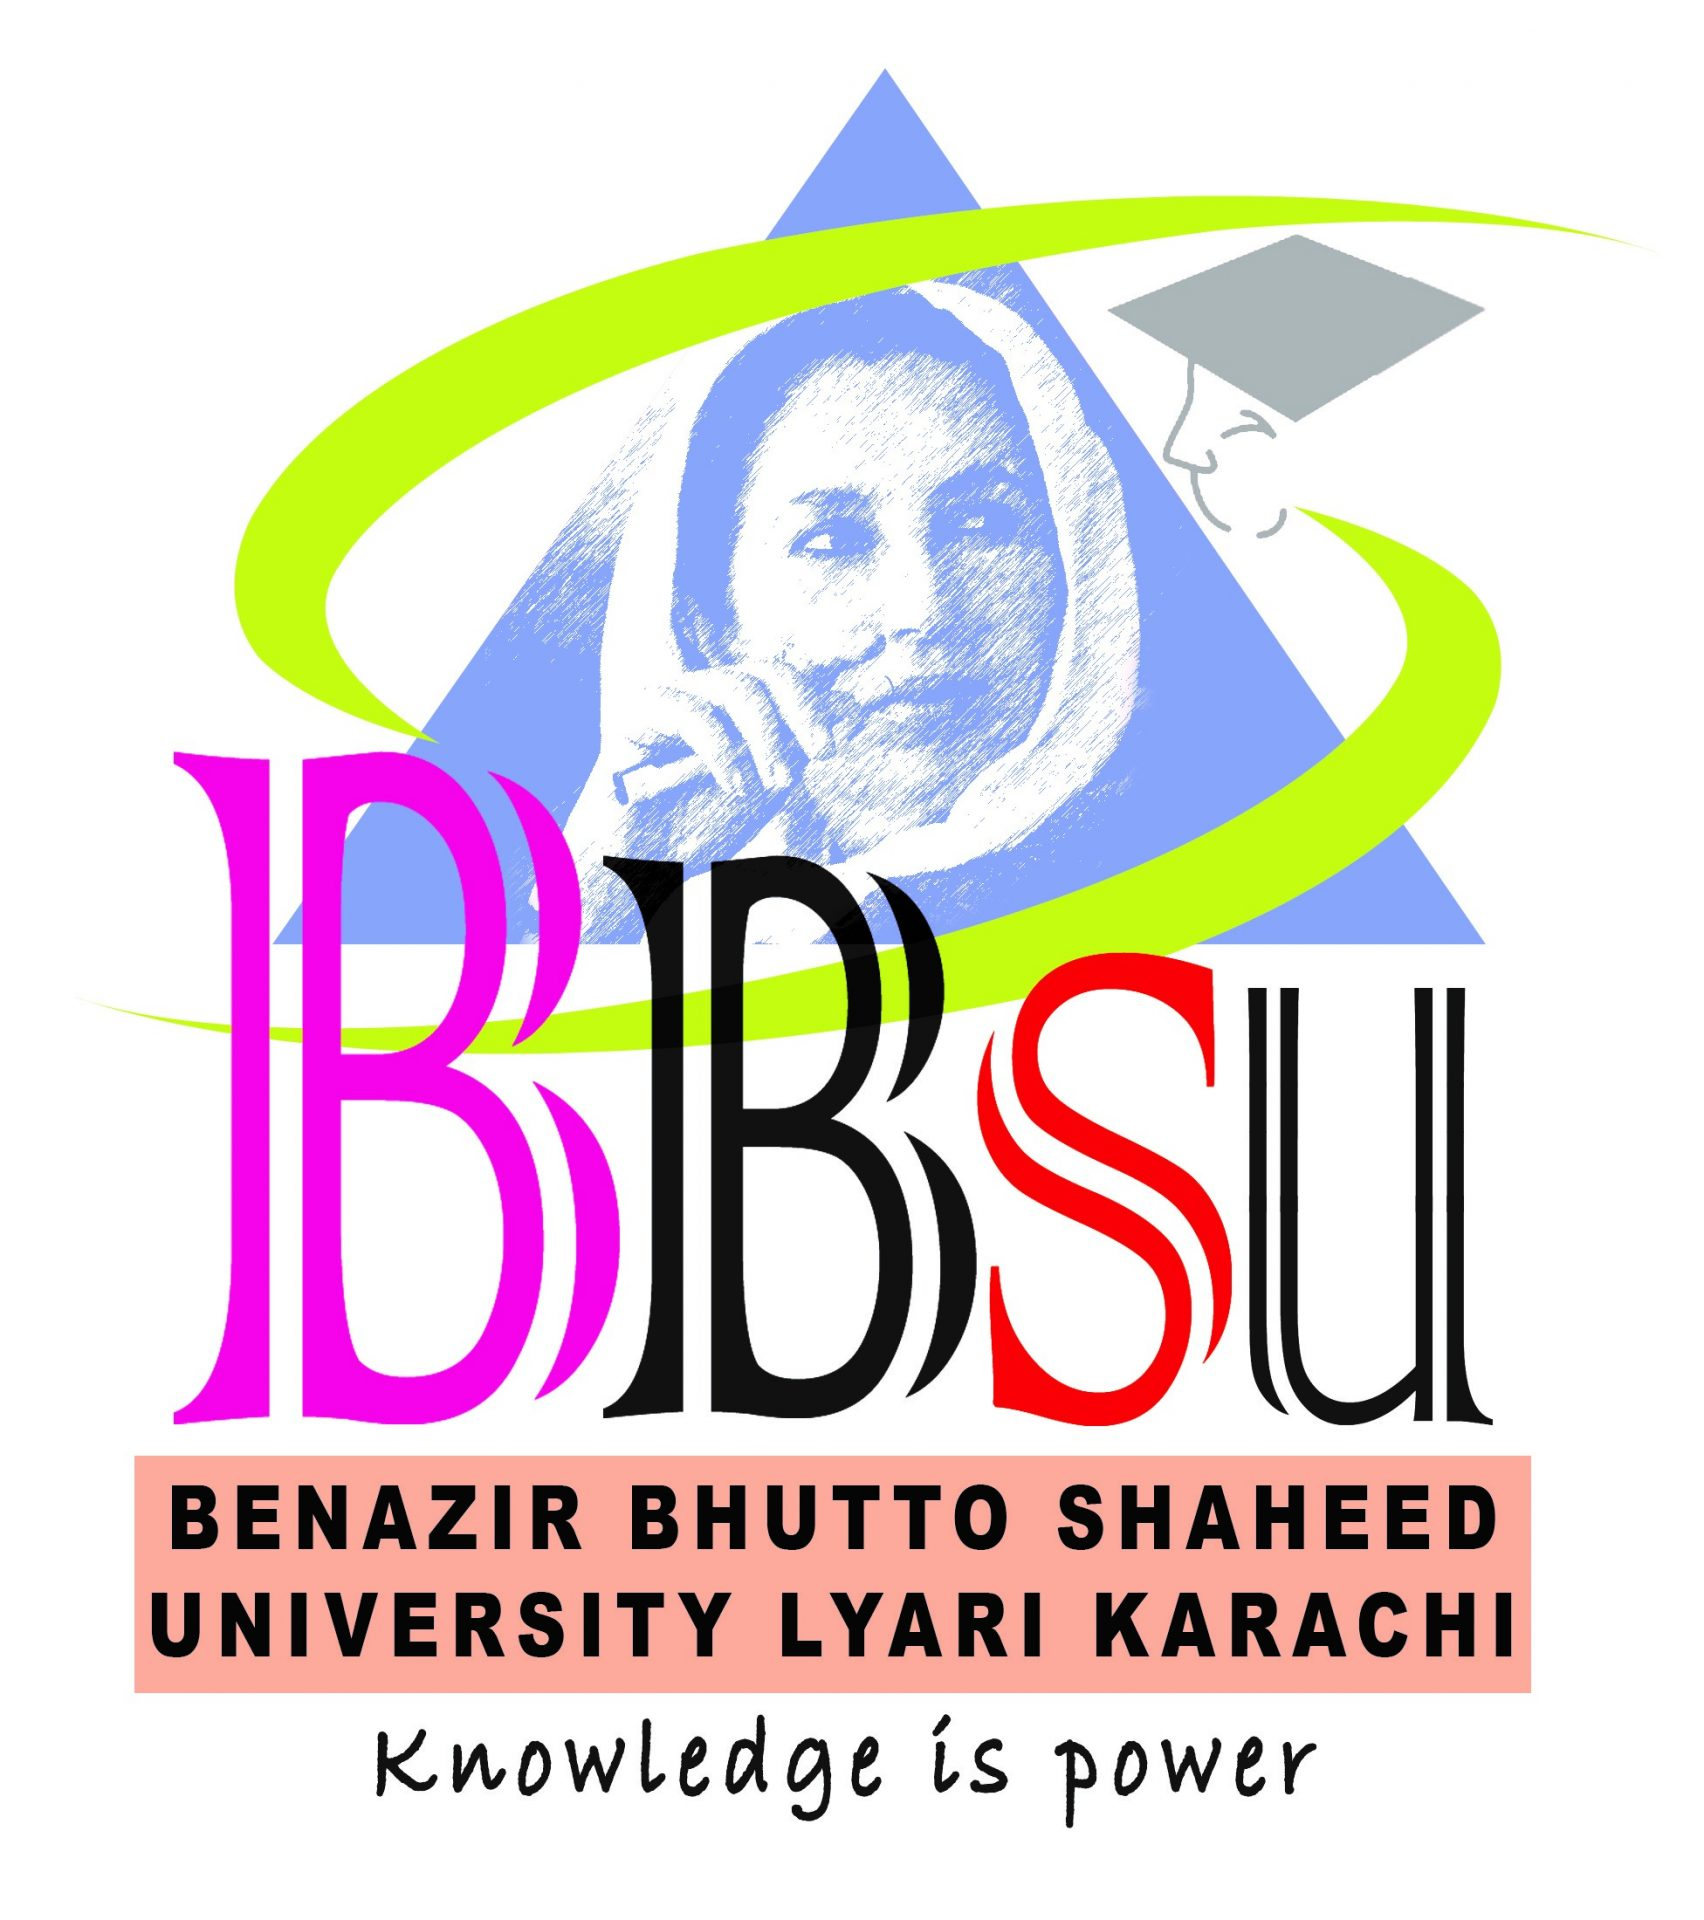 Benazir Bhutto Shaheed University Lyari Contact Number, Fees, Admission Courses